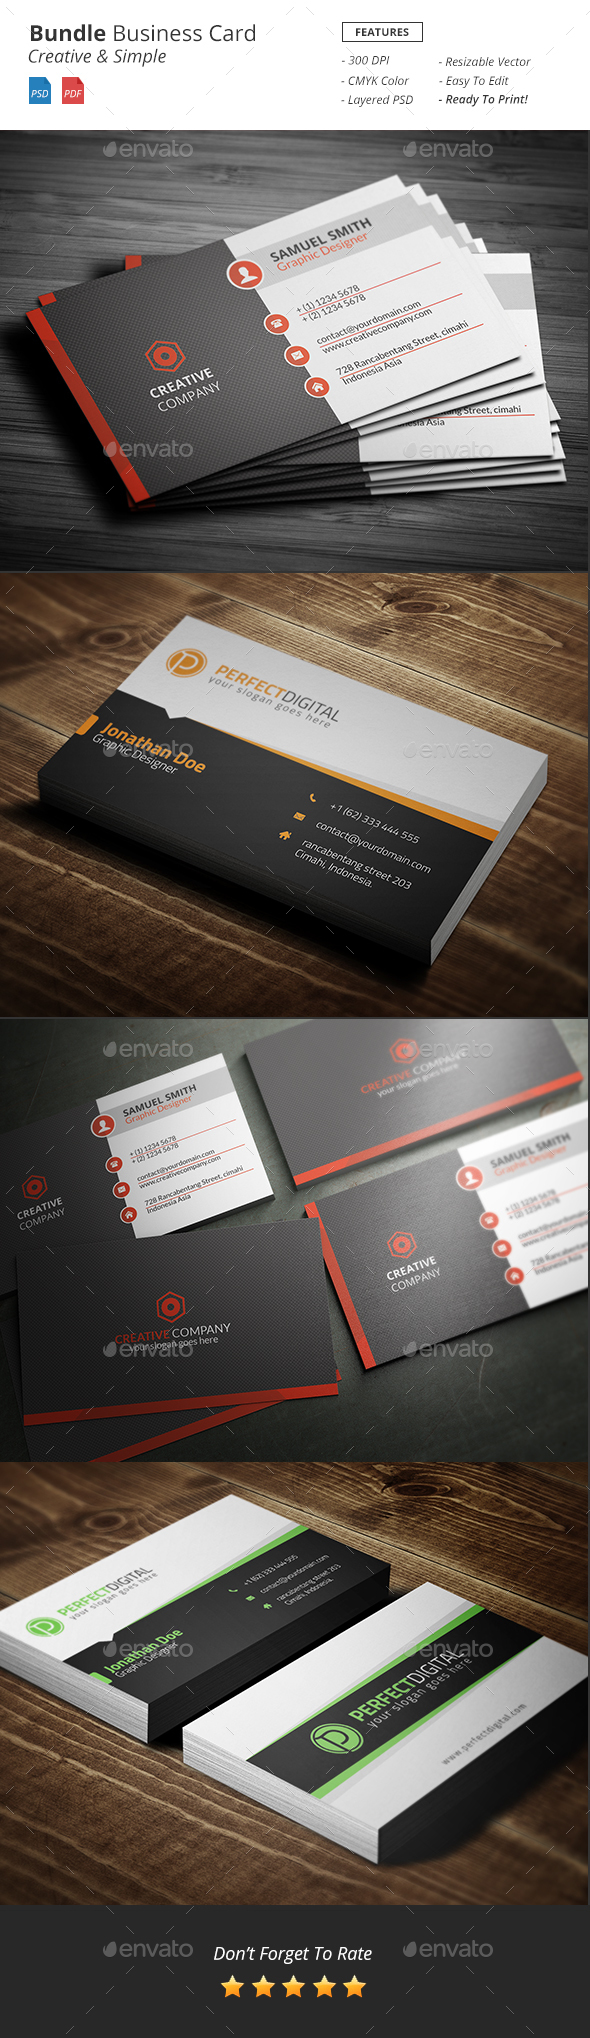 Bundle Business Card - Business Cards Print Templates